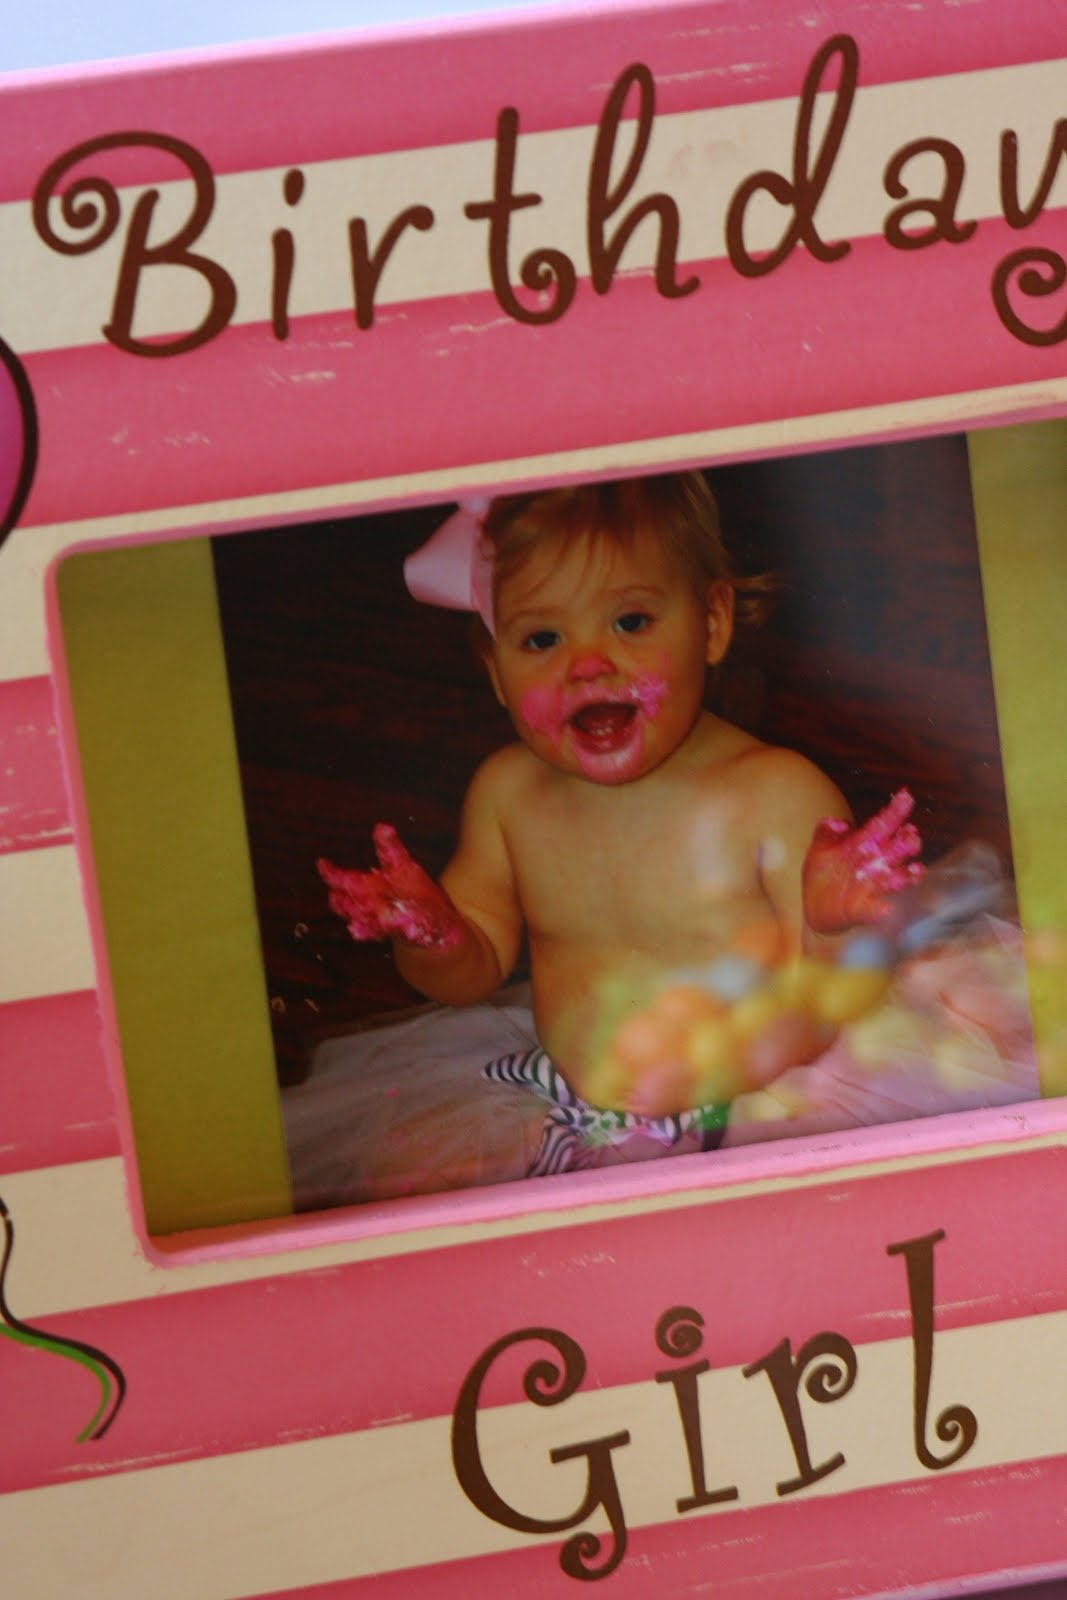 Professional first birthday pictures Braces Worth it? Reviews, Cost, Pictures - RealSelf